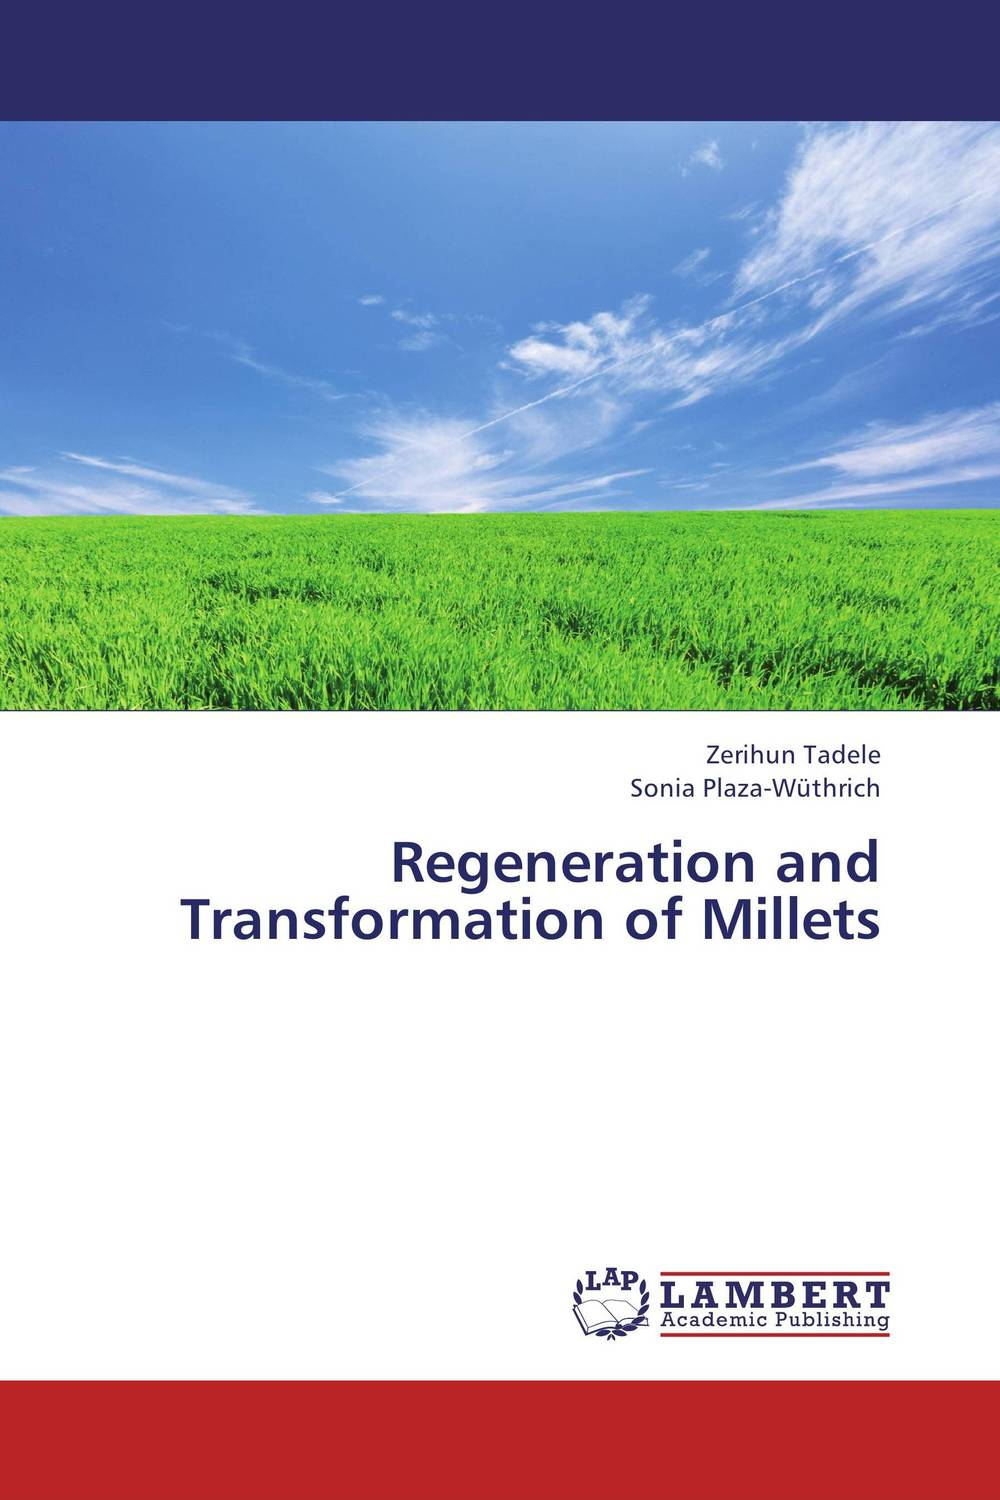 Regeneration and Transformation of Millets viruses cell transformation and cancer 5